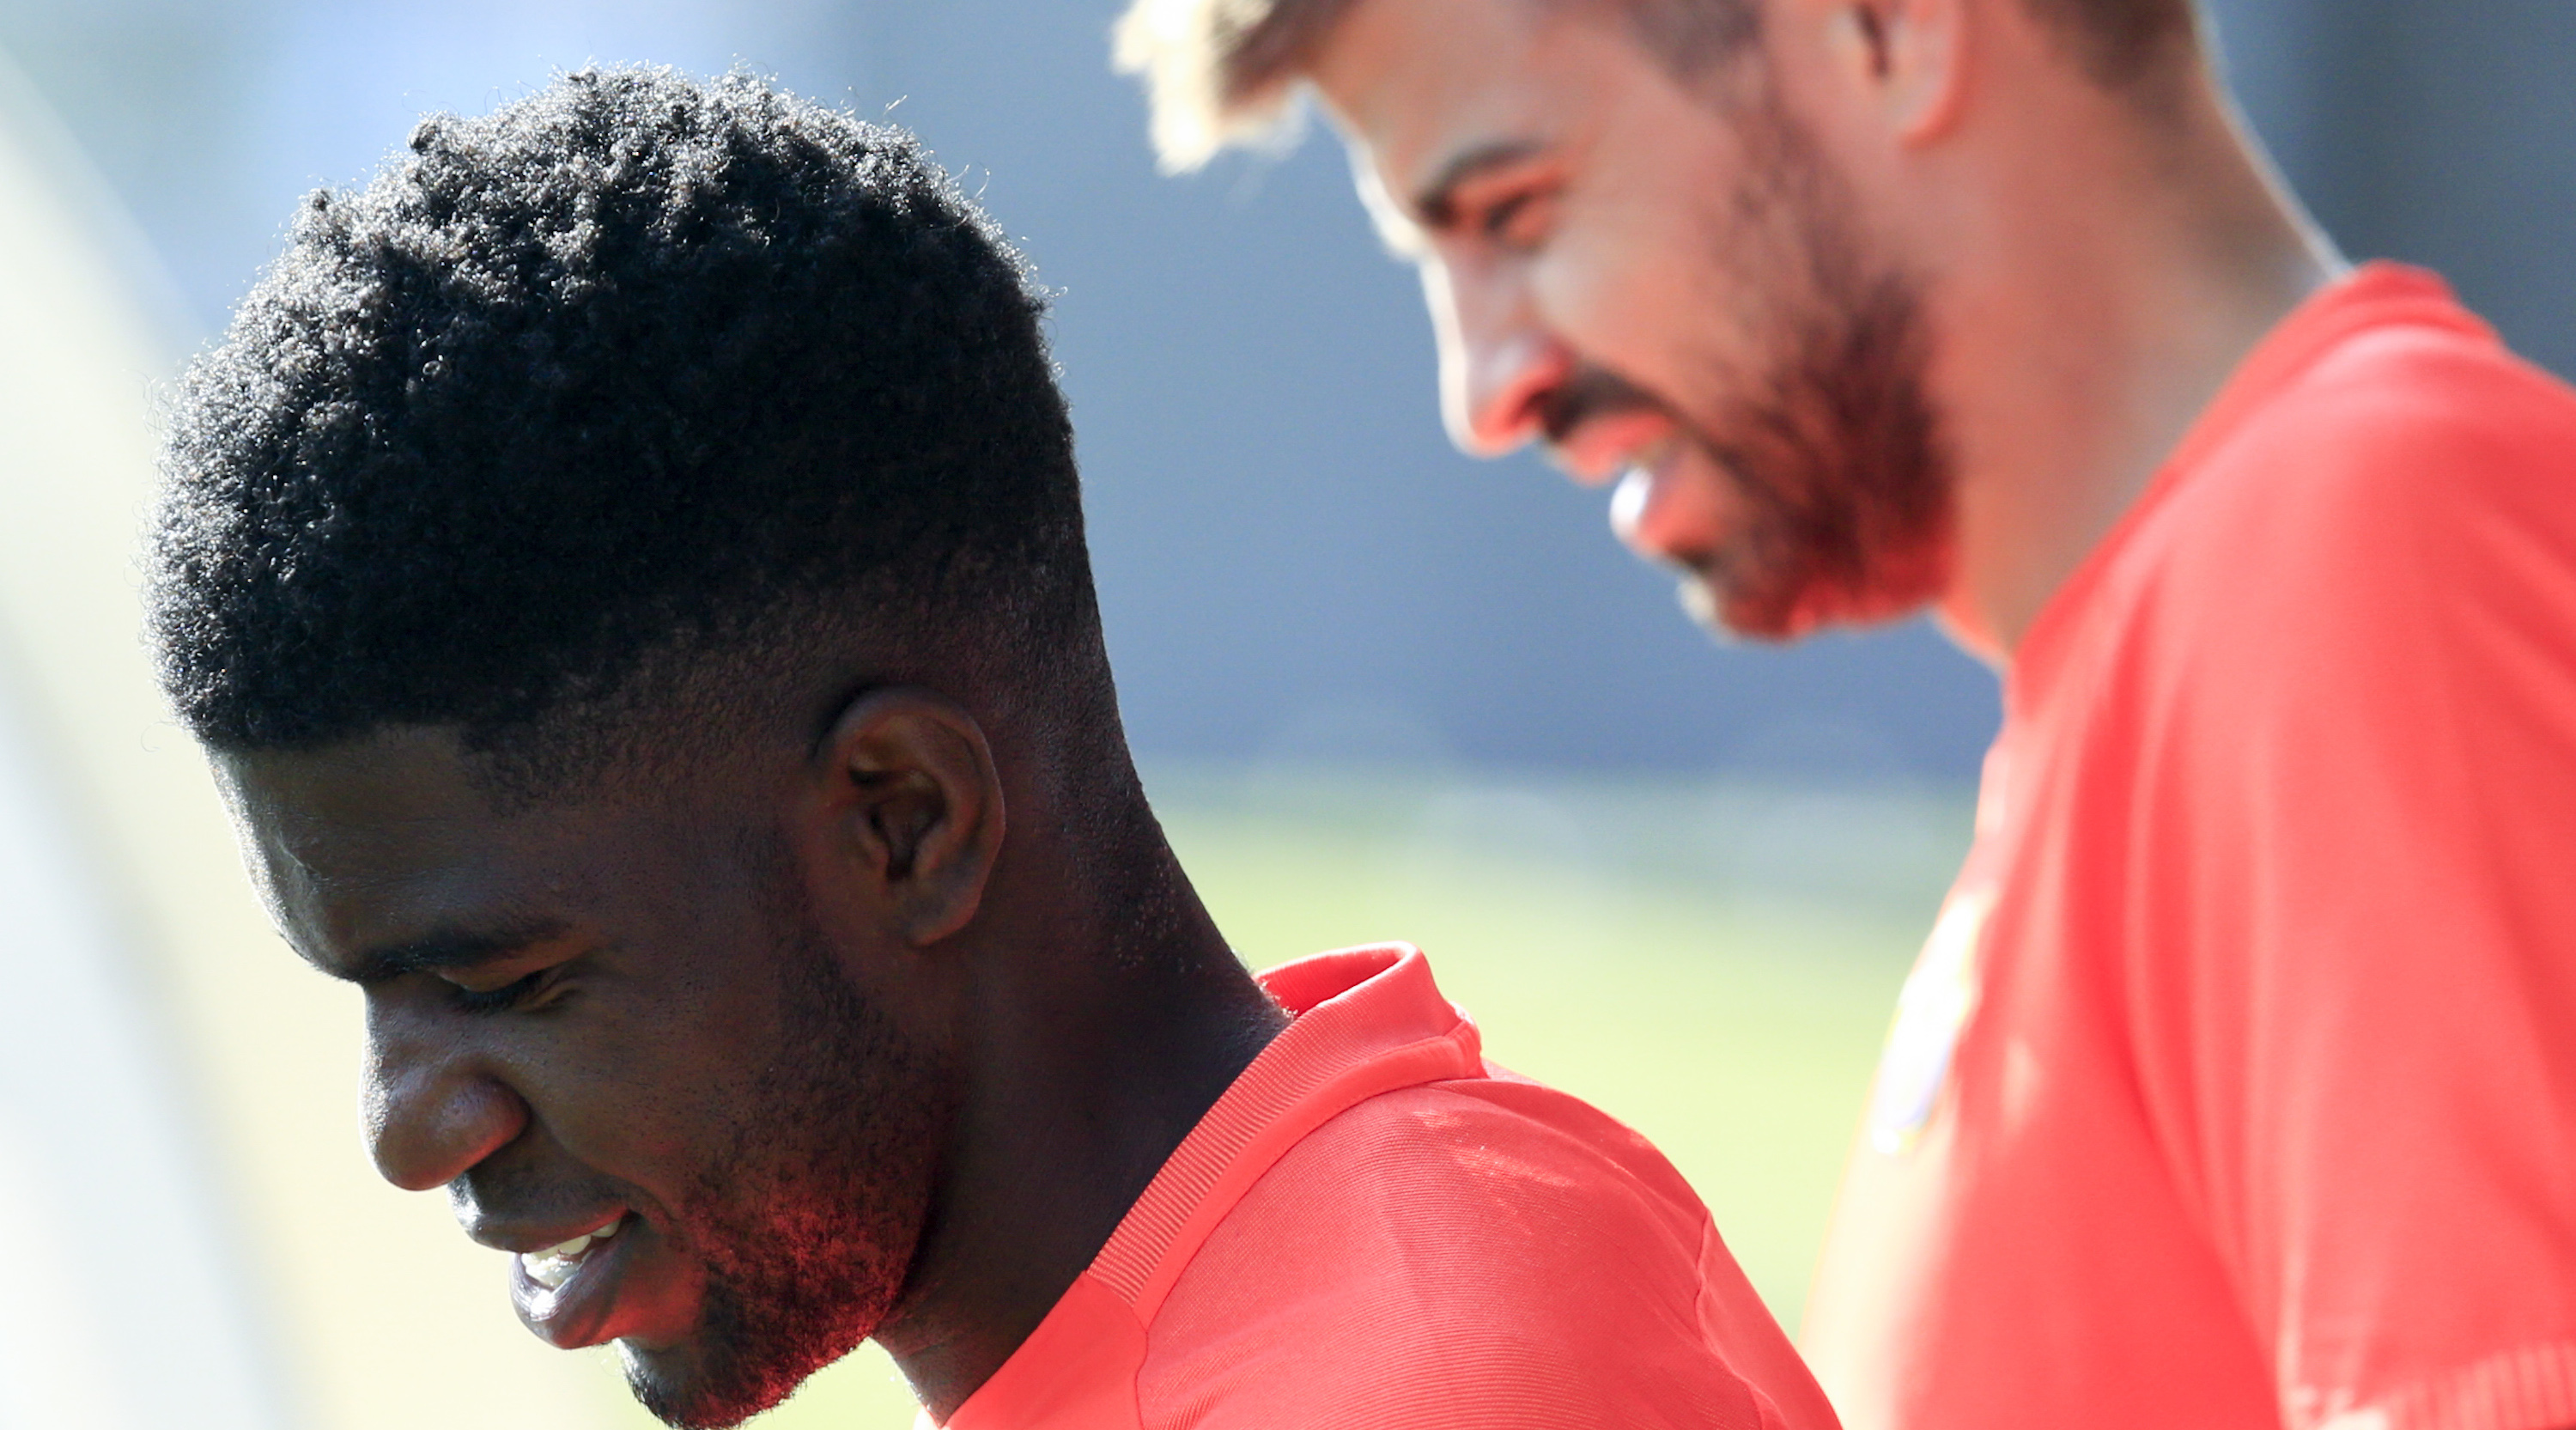 Barcelona's French defender Samuel Umtiti (L) and Barcelona's defender Gerard Pique arrive to a training session at the Sports Center FC Barcelona Joan Gamper in Sant Joan Despi, near Barcelona on August 19, 2016 / AFP / PAU BARRENA (Photo credit should read PAU BARRENA/AFP/Getty Images)